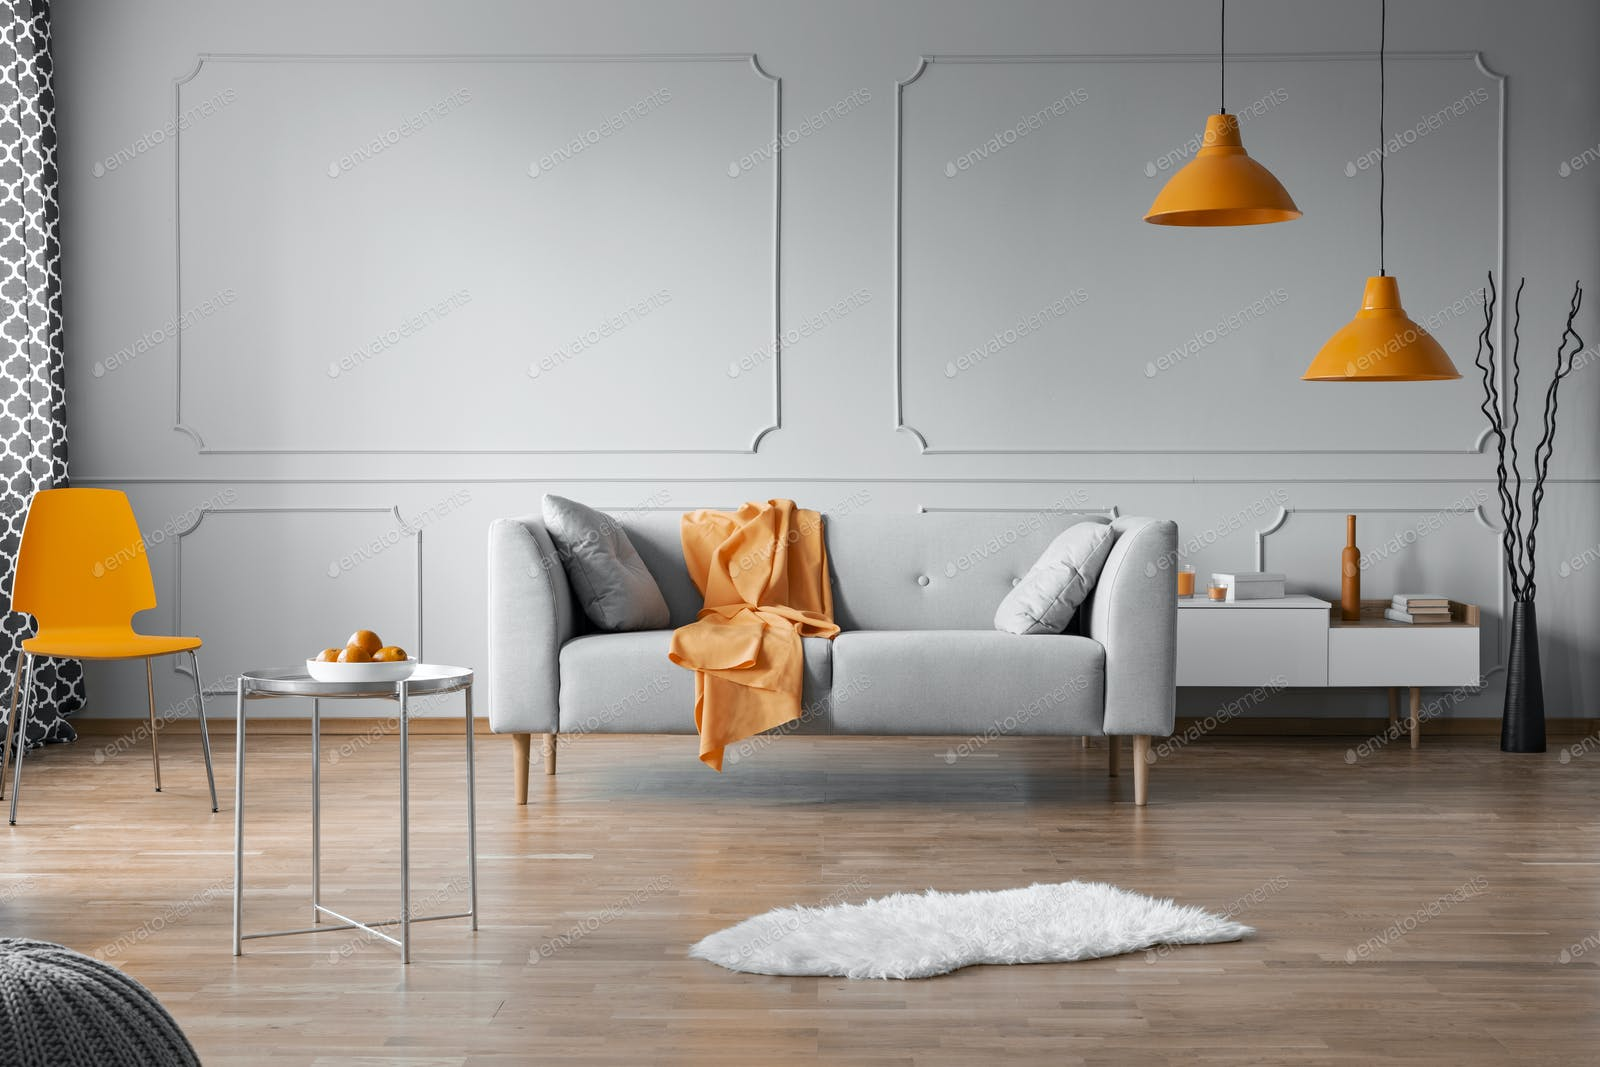 Orange accents in grey living room interior with copy space on empty wall  photo by bialasiewicz on Envato Elements